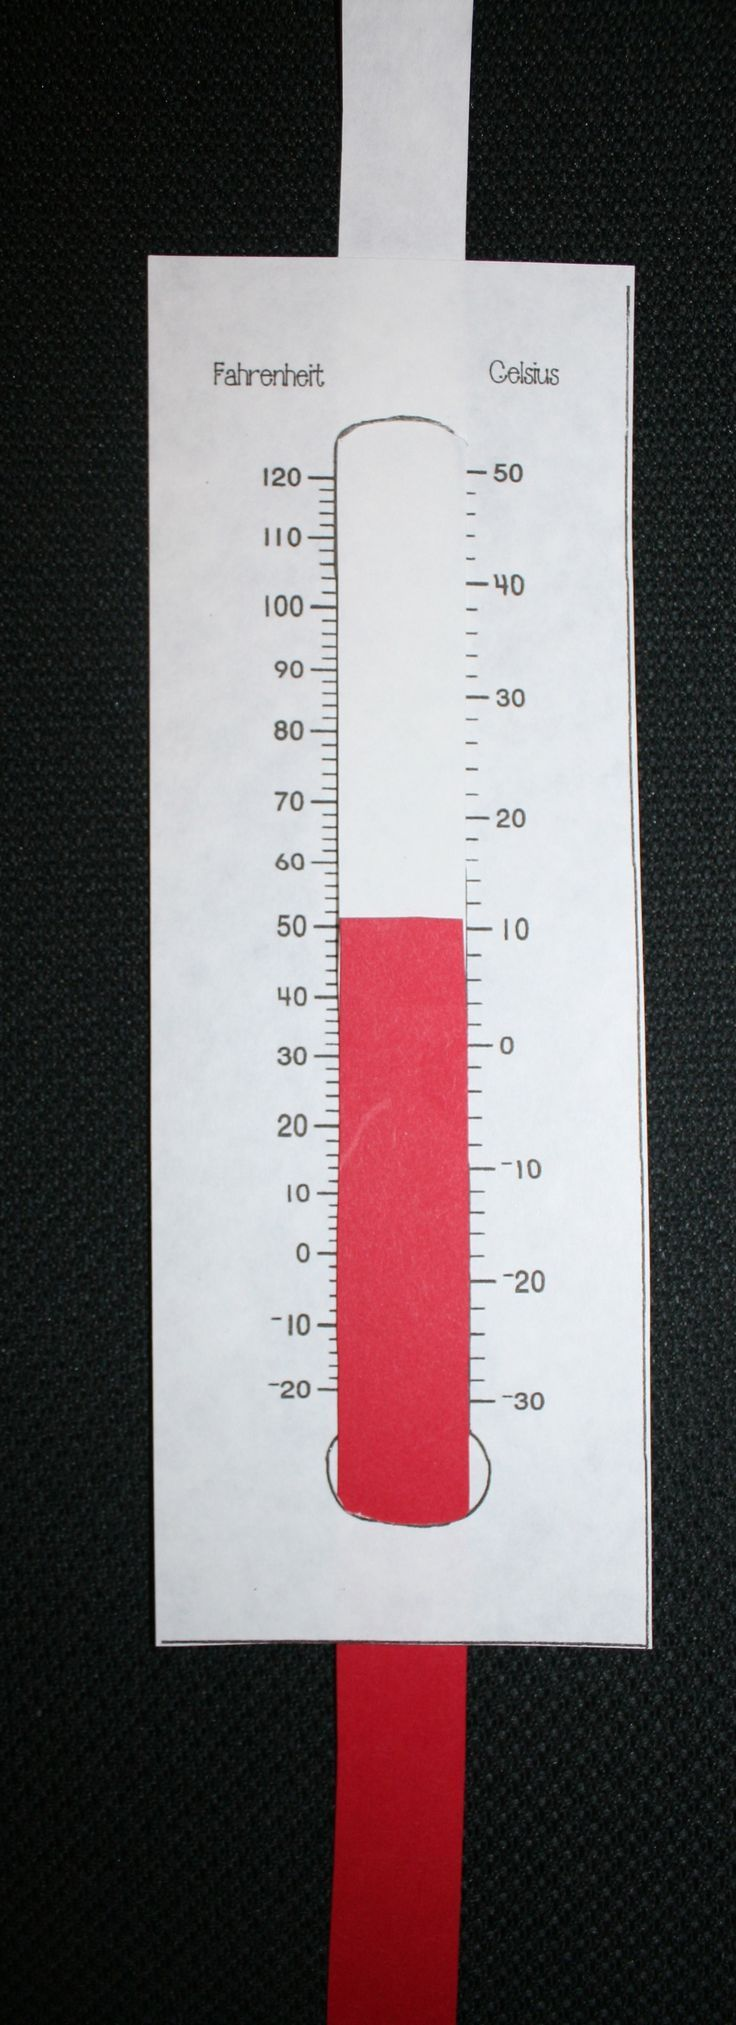 themometer template, themometer activities, temperature activties, weather activities, weather lessons, reading a thermometer, temperature l...